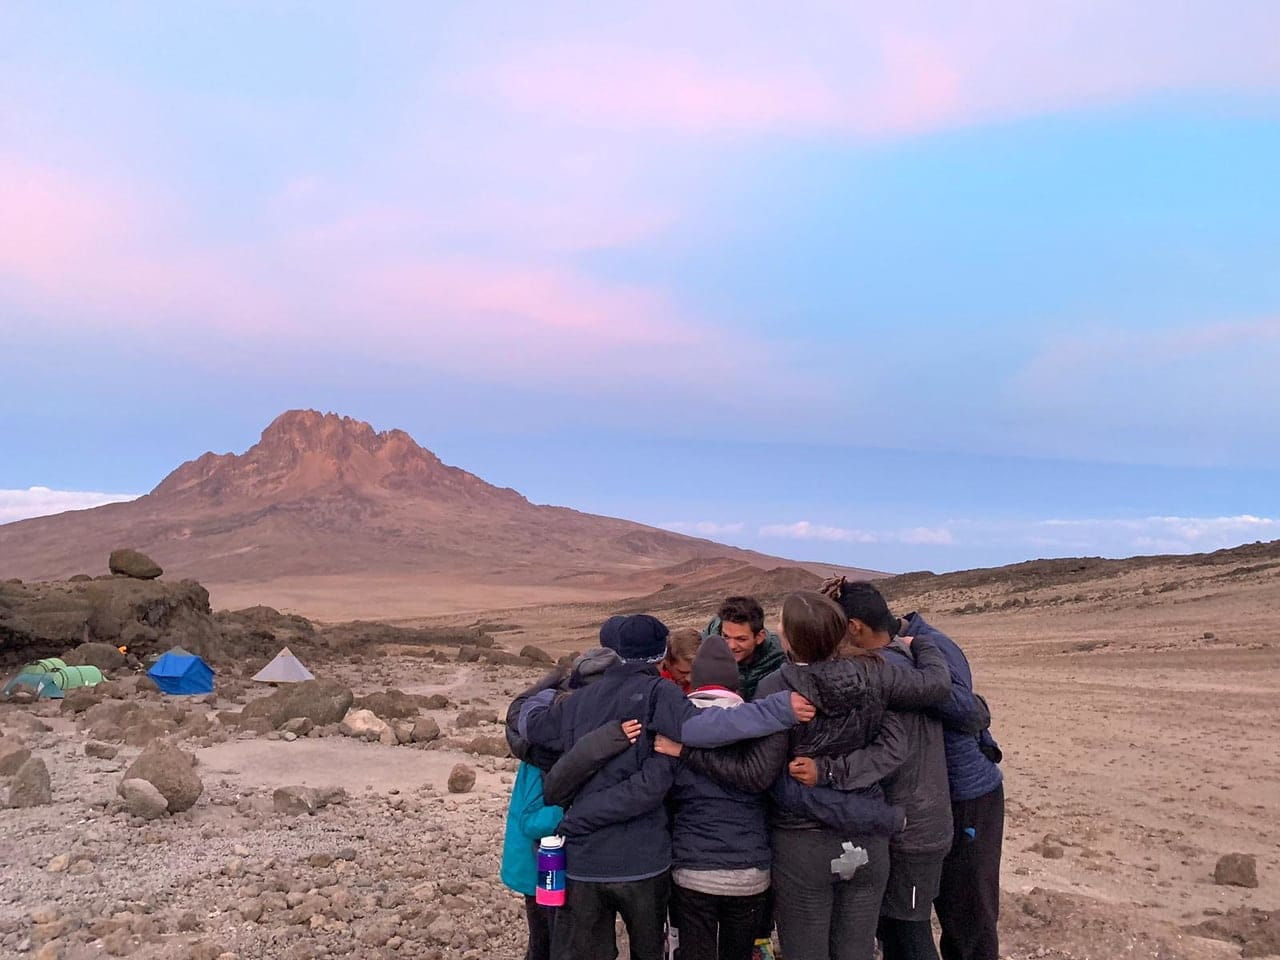 Teens huddle during a summer sunset to reflect on a day well spent hiking in Tanzania